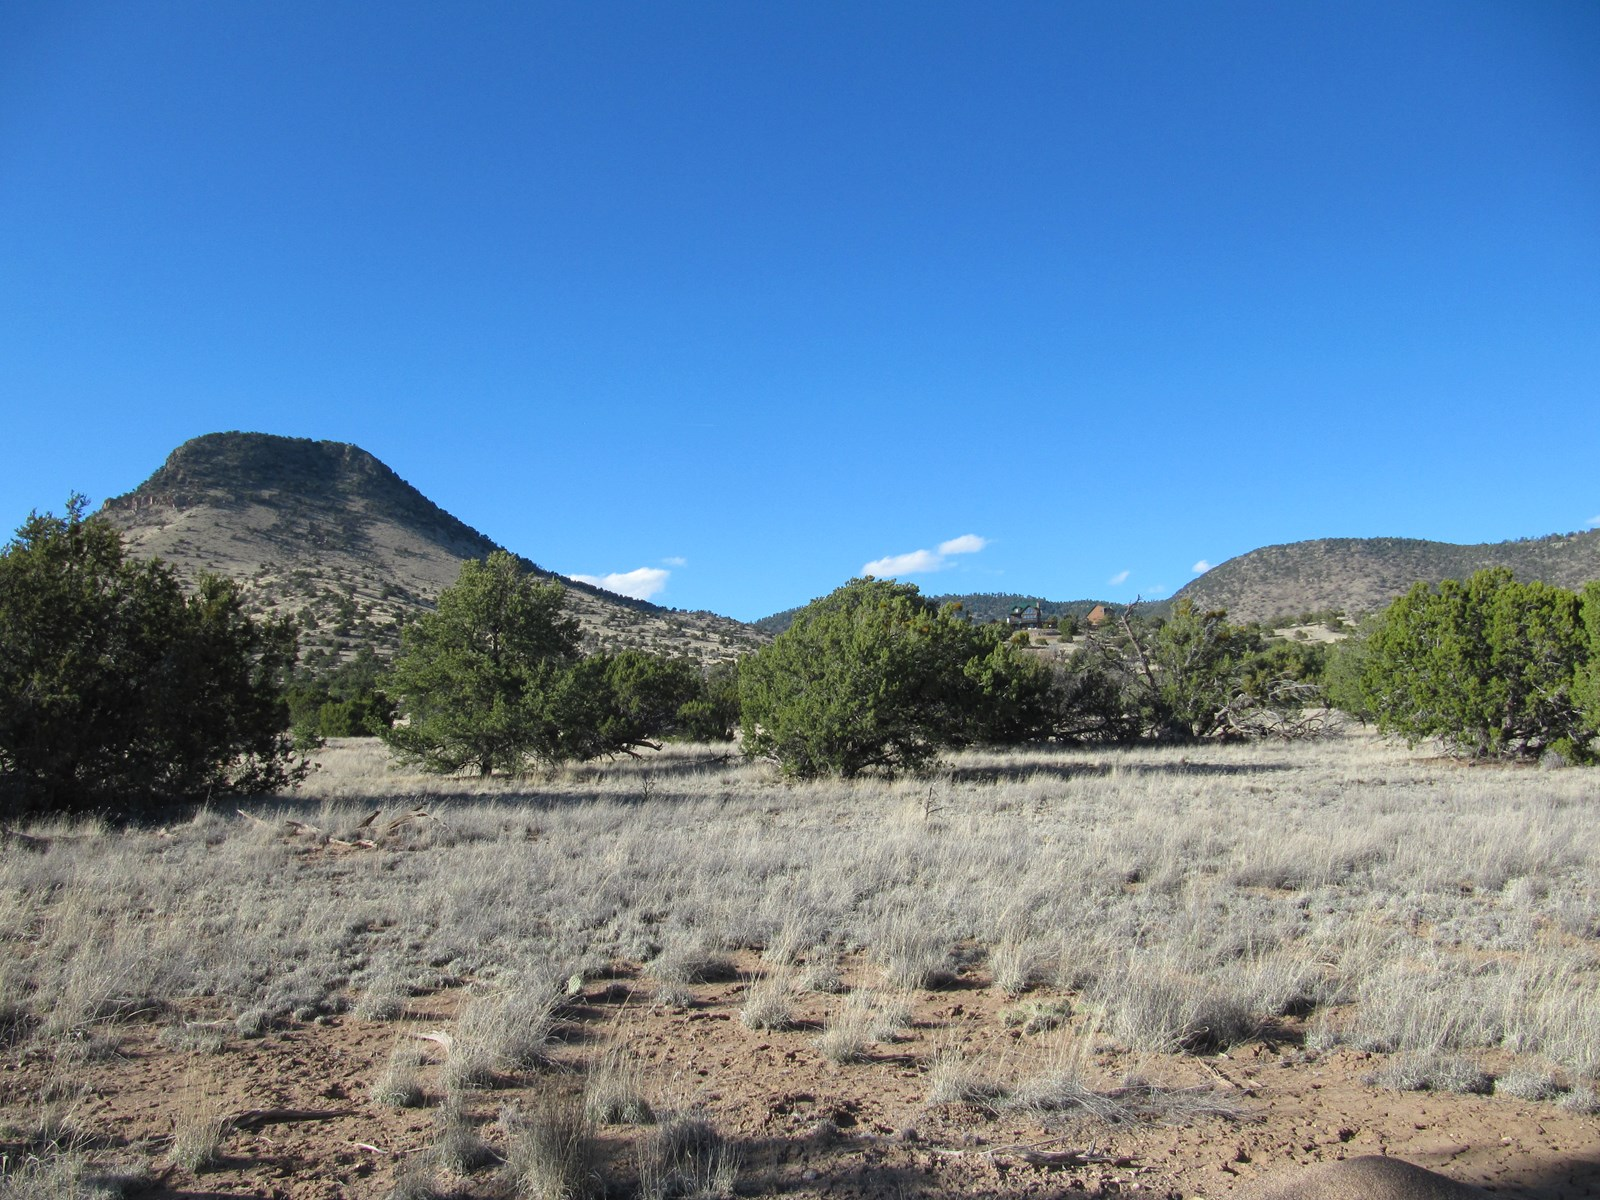 Wonderful views of Sugarloaf Mountain in Southern New Mexico